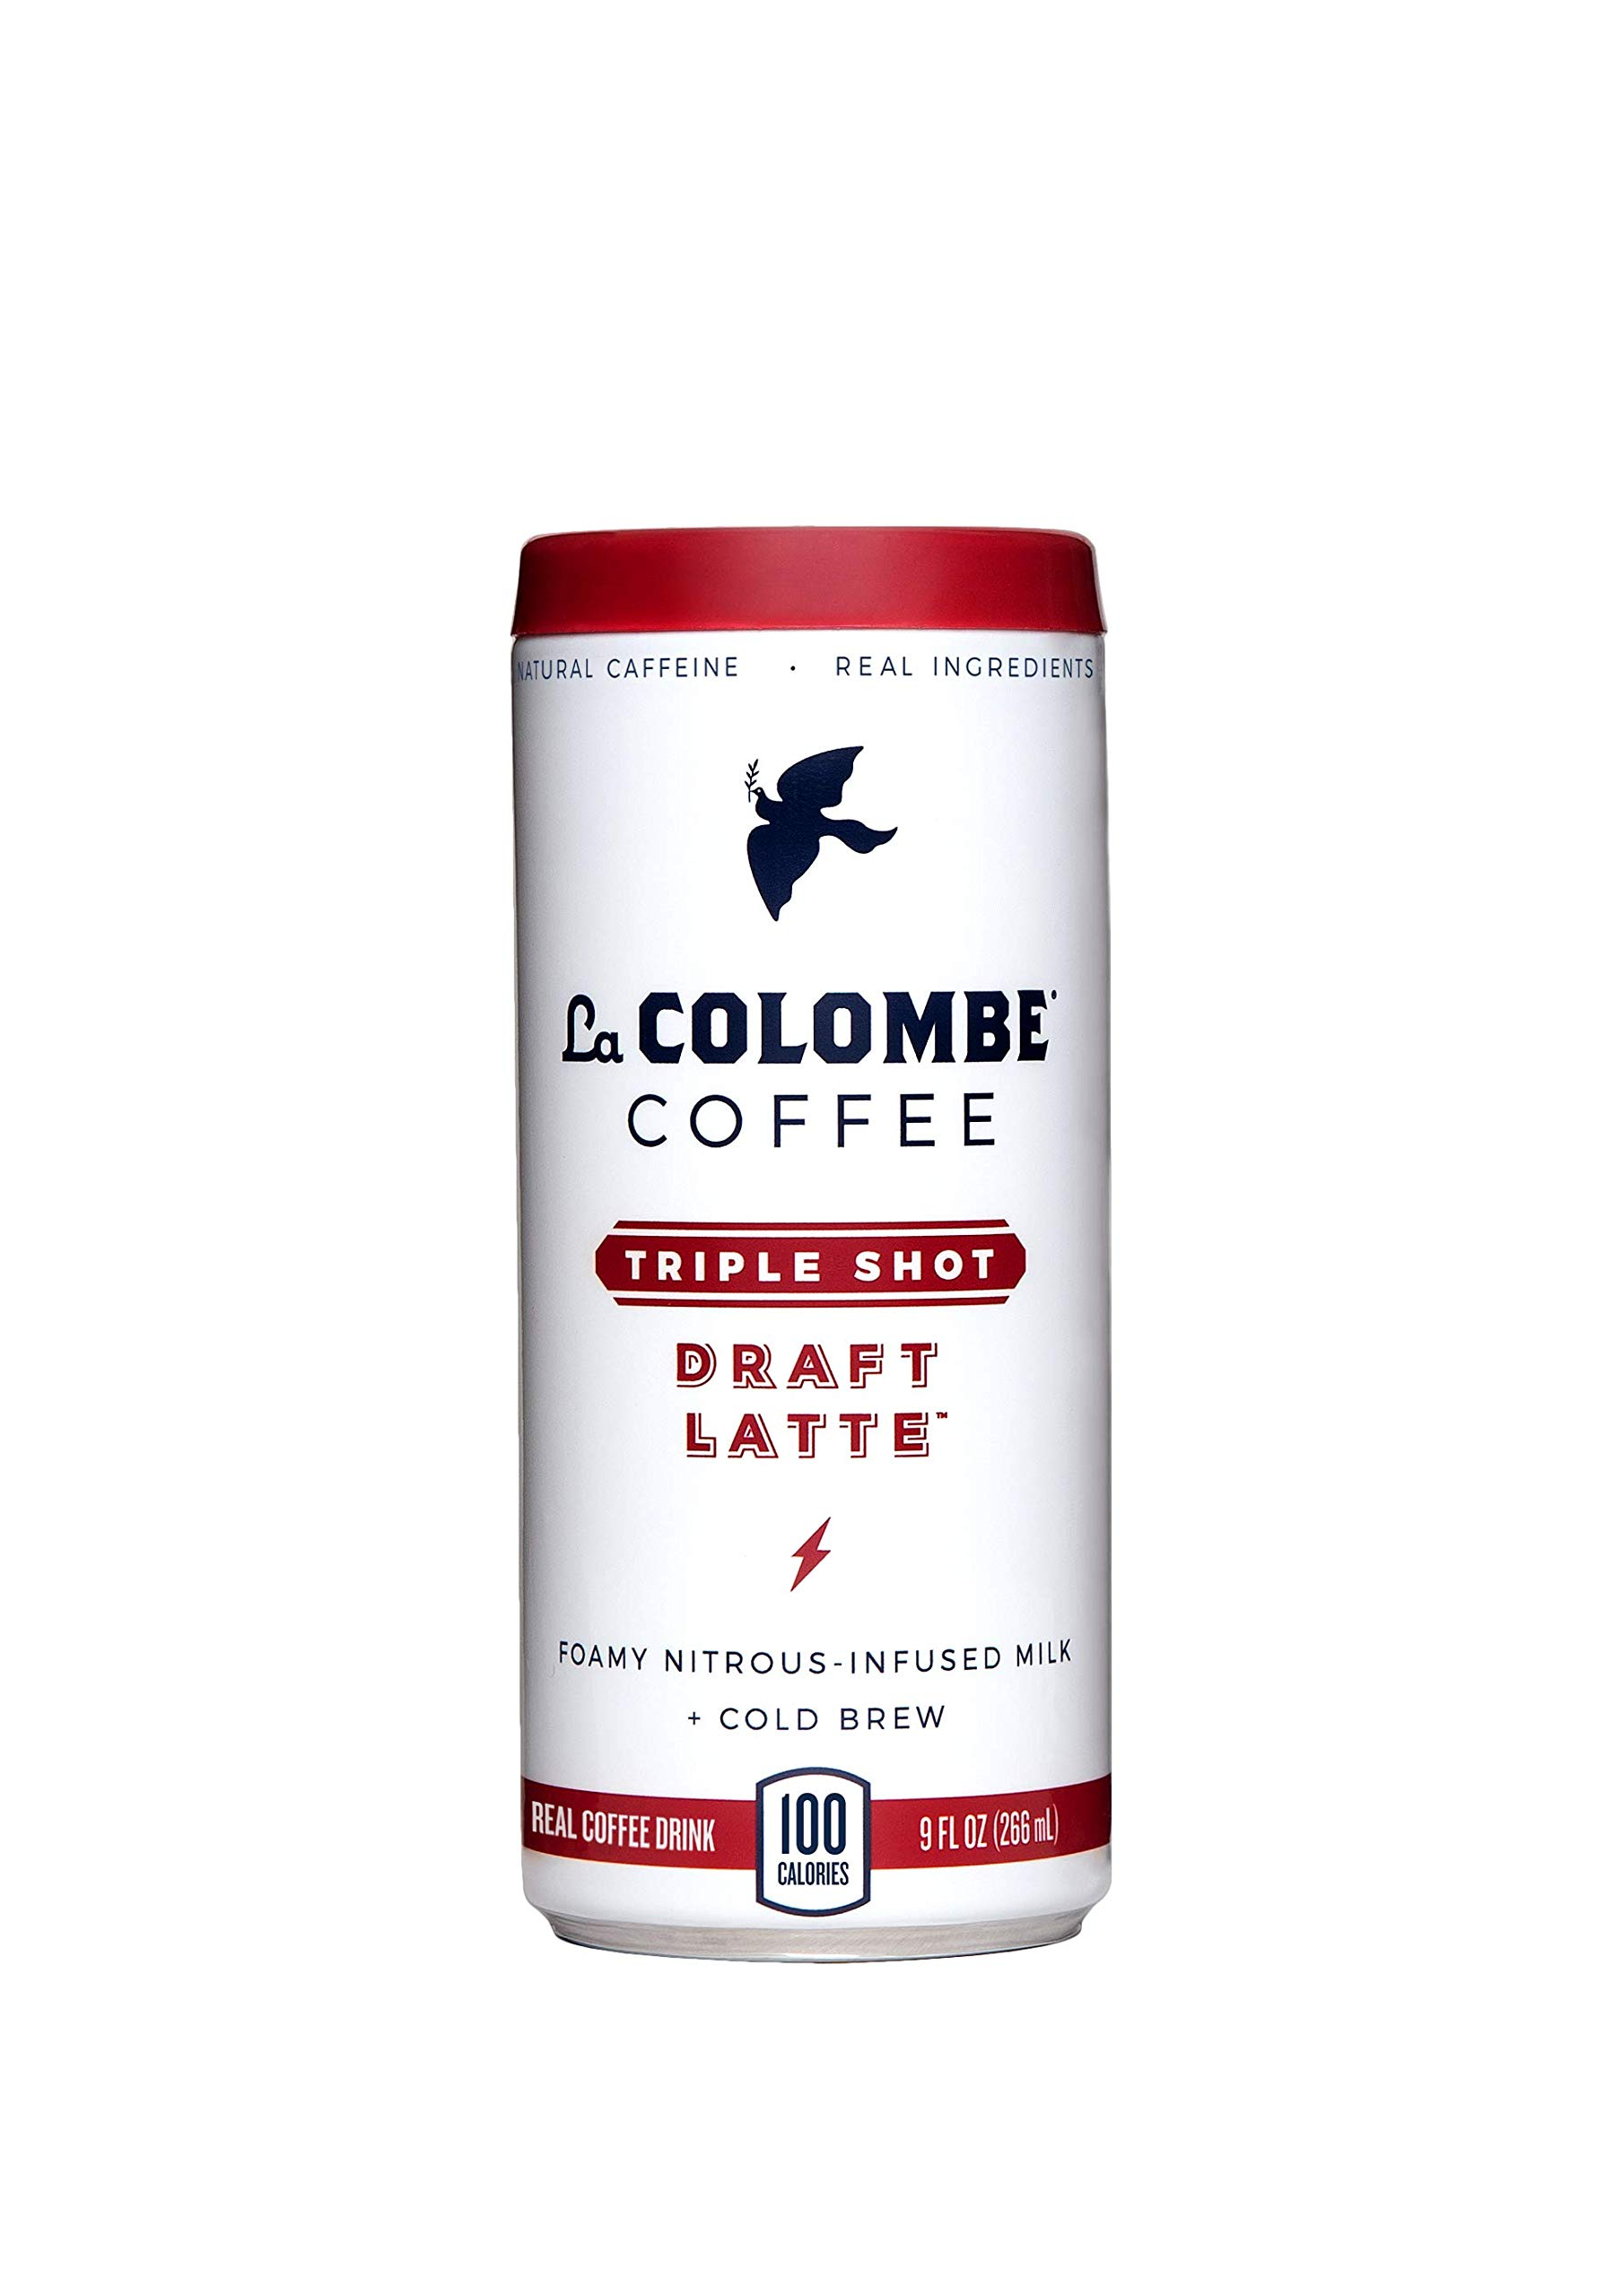 La Colombe Triple Draft Latte - 9 Fluid Ounce, 16 Count - 3 Shots Of Cold-Pressed Espresso and Frothed Milk - Made With Real Ingredients - Grab And Go Coffee by La Colombe